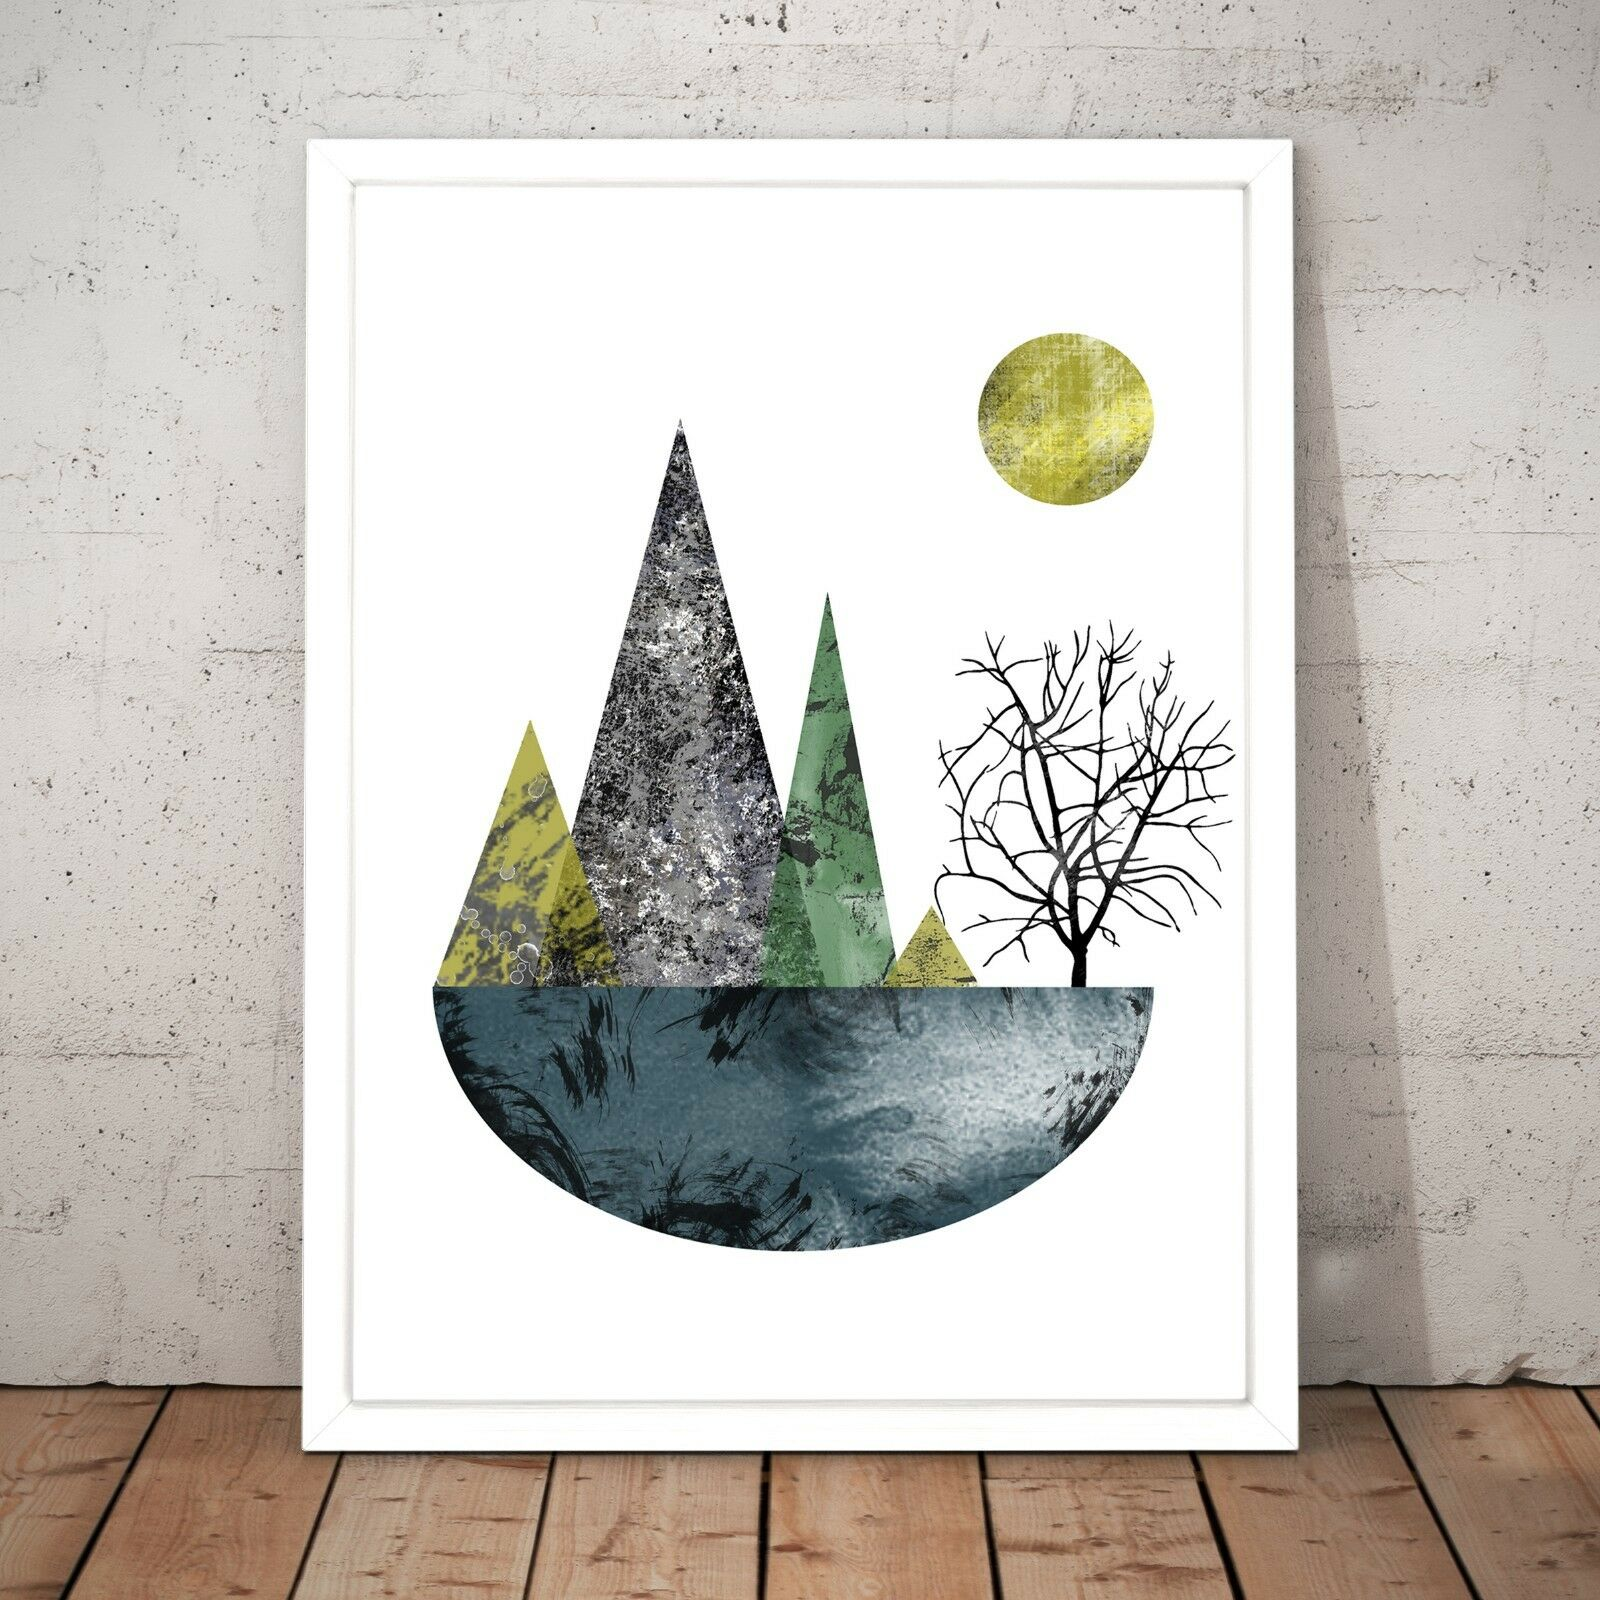 Nature Scandi Modern Scandinavian Decor Art Poster Print - A4 A3 A2 A1 A0 Framed